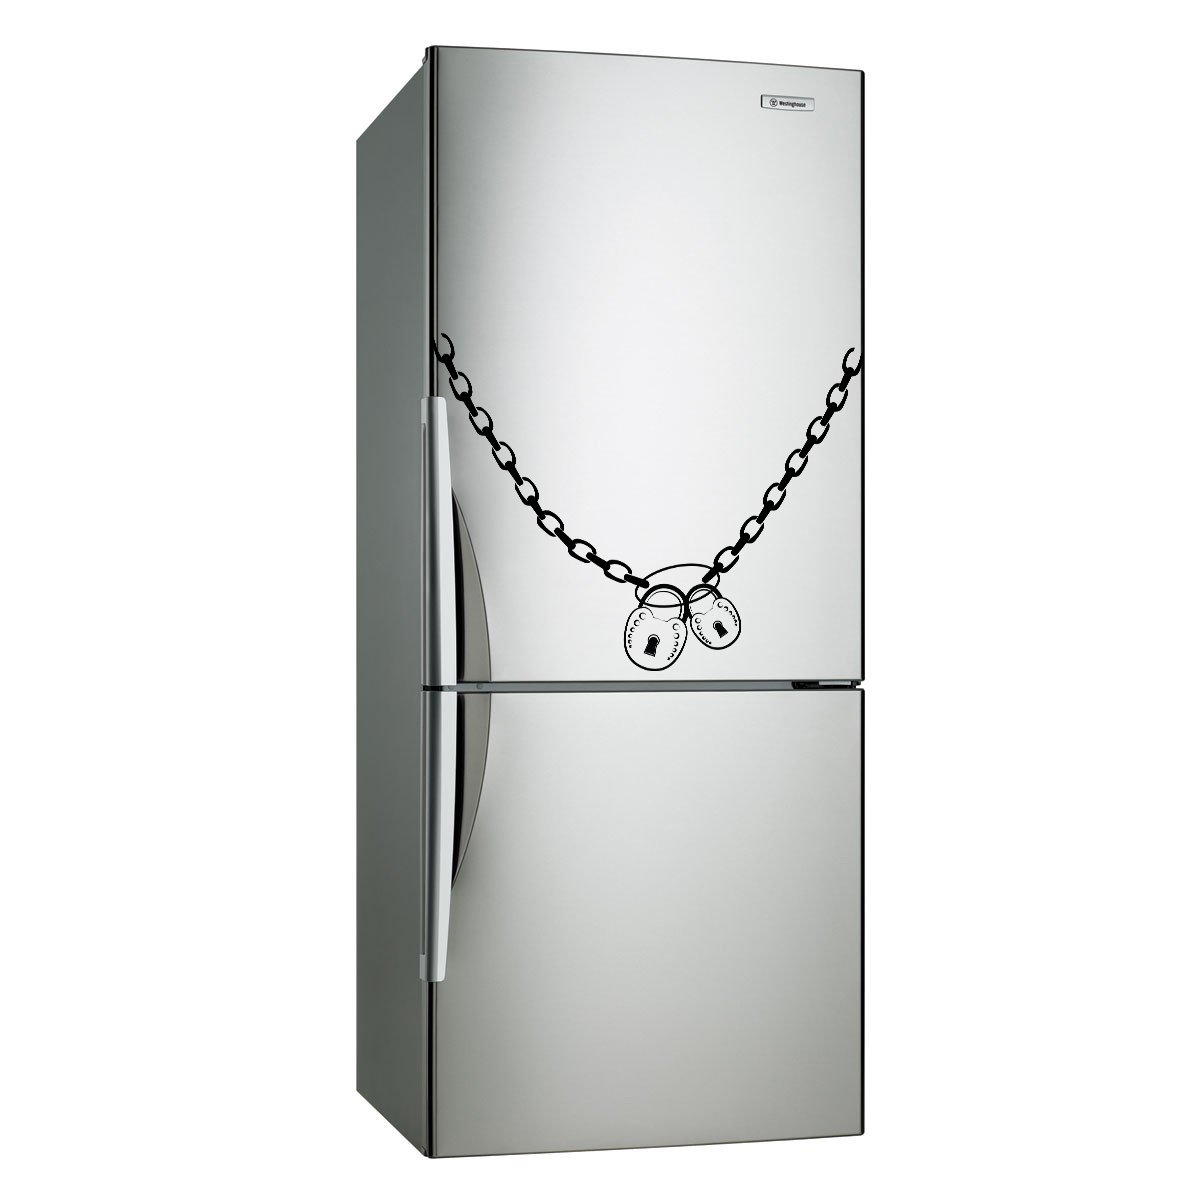 (24''x18'') Vinyl Fridge Decal Lock & Chain Refrigerator Art Decor Home Sticker + Free Decal Gift!